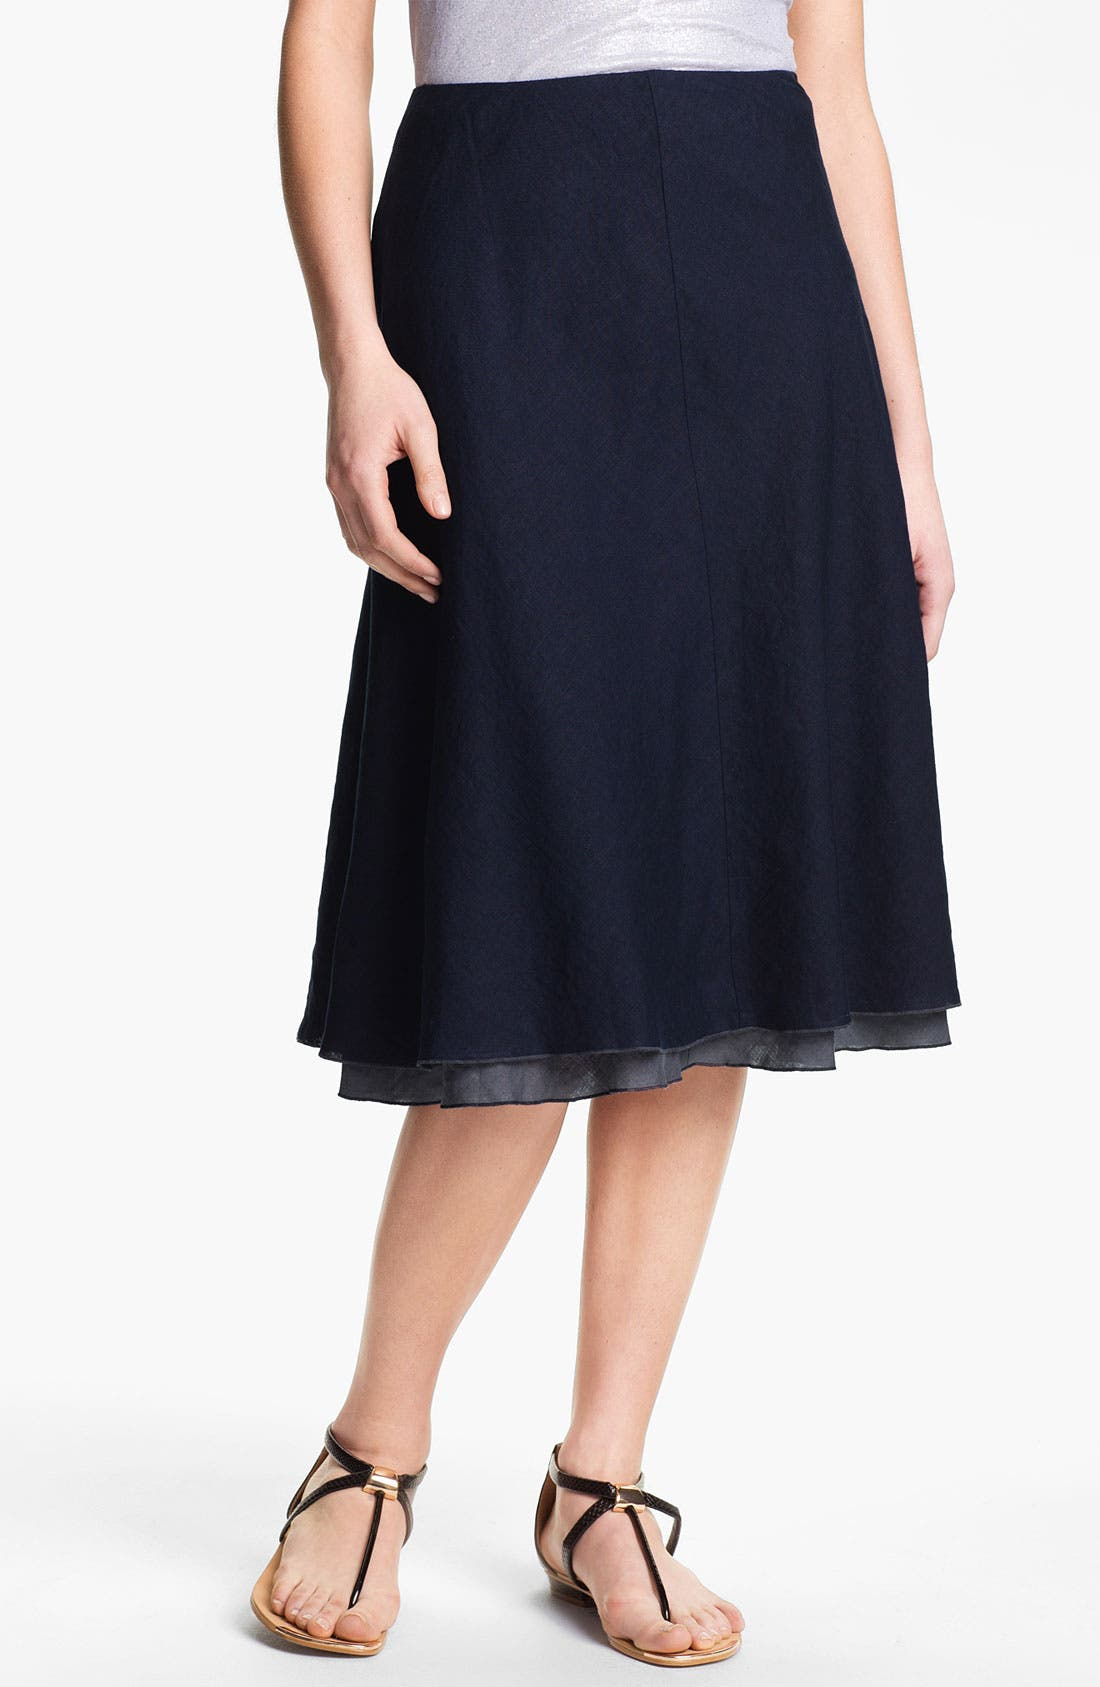 Alternate Image 1 Selected - Eileen Fisher Double Layer Bias Linen Skirt (Petite)